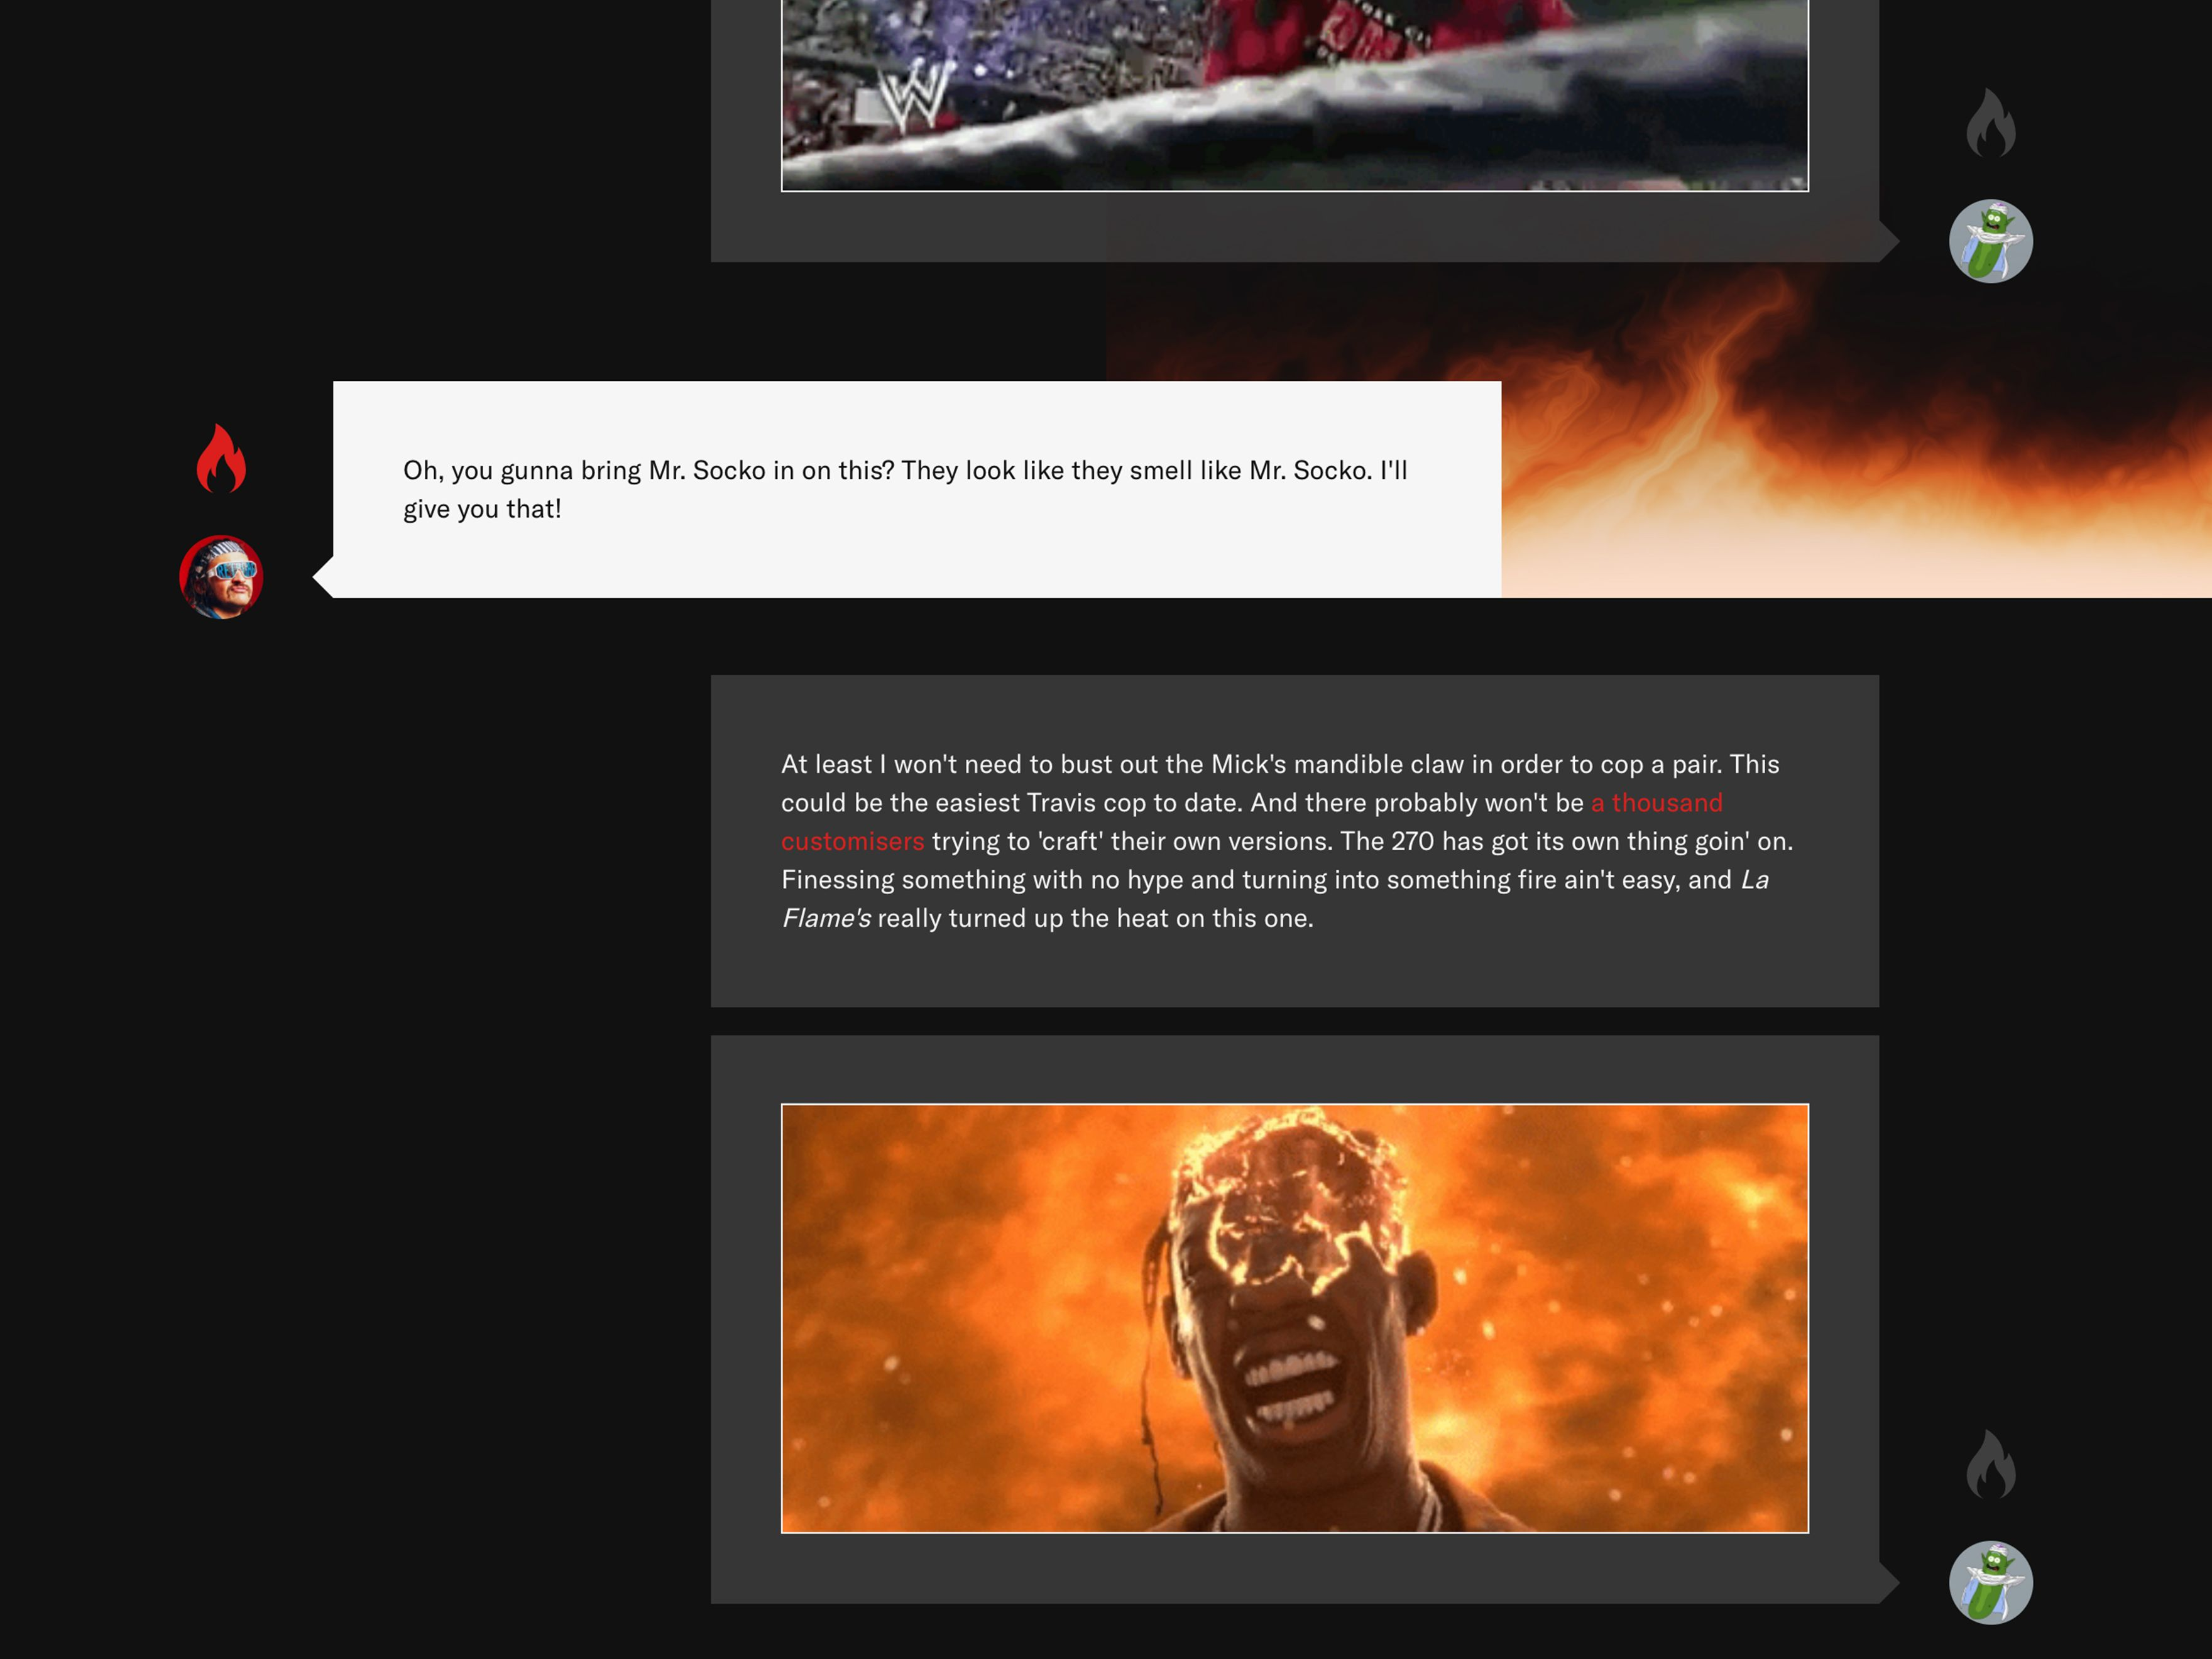 Screenshot of Sneaker Freaker Versus article dialogue